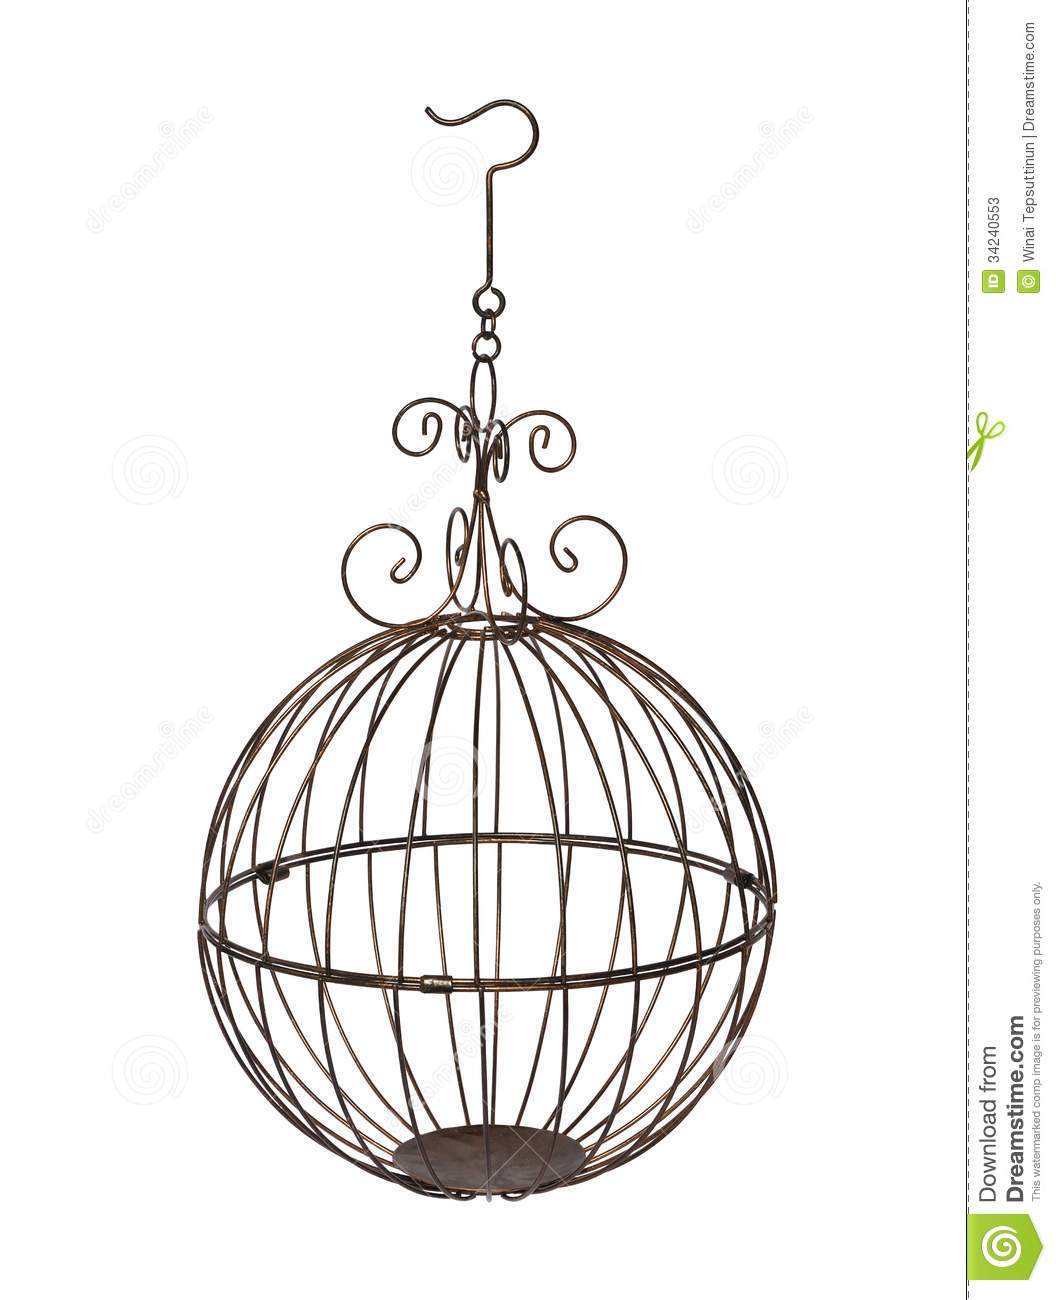 Bird Cage Stock Photos - Image: 34240553 Chinese Lantern Clipart